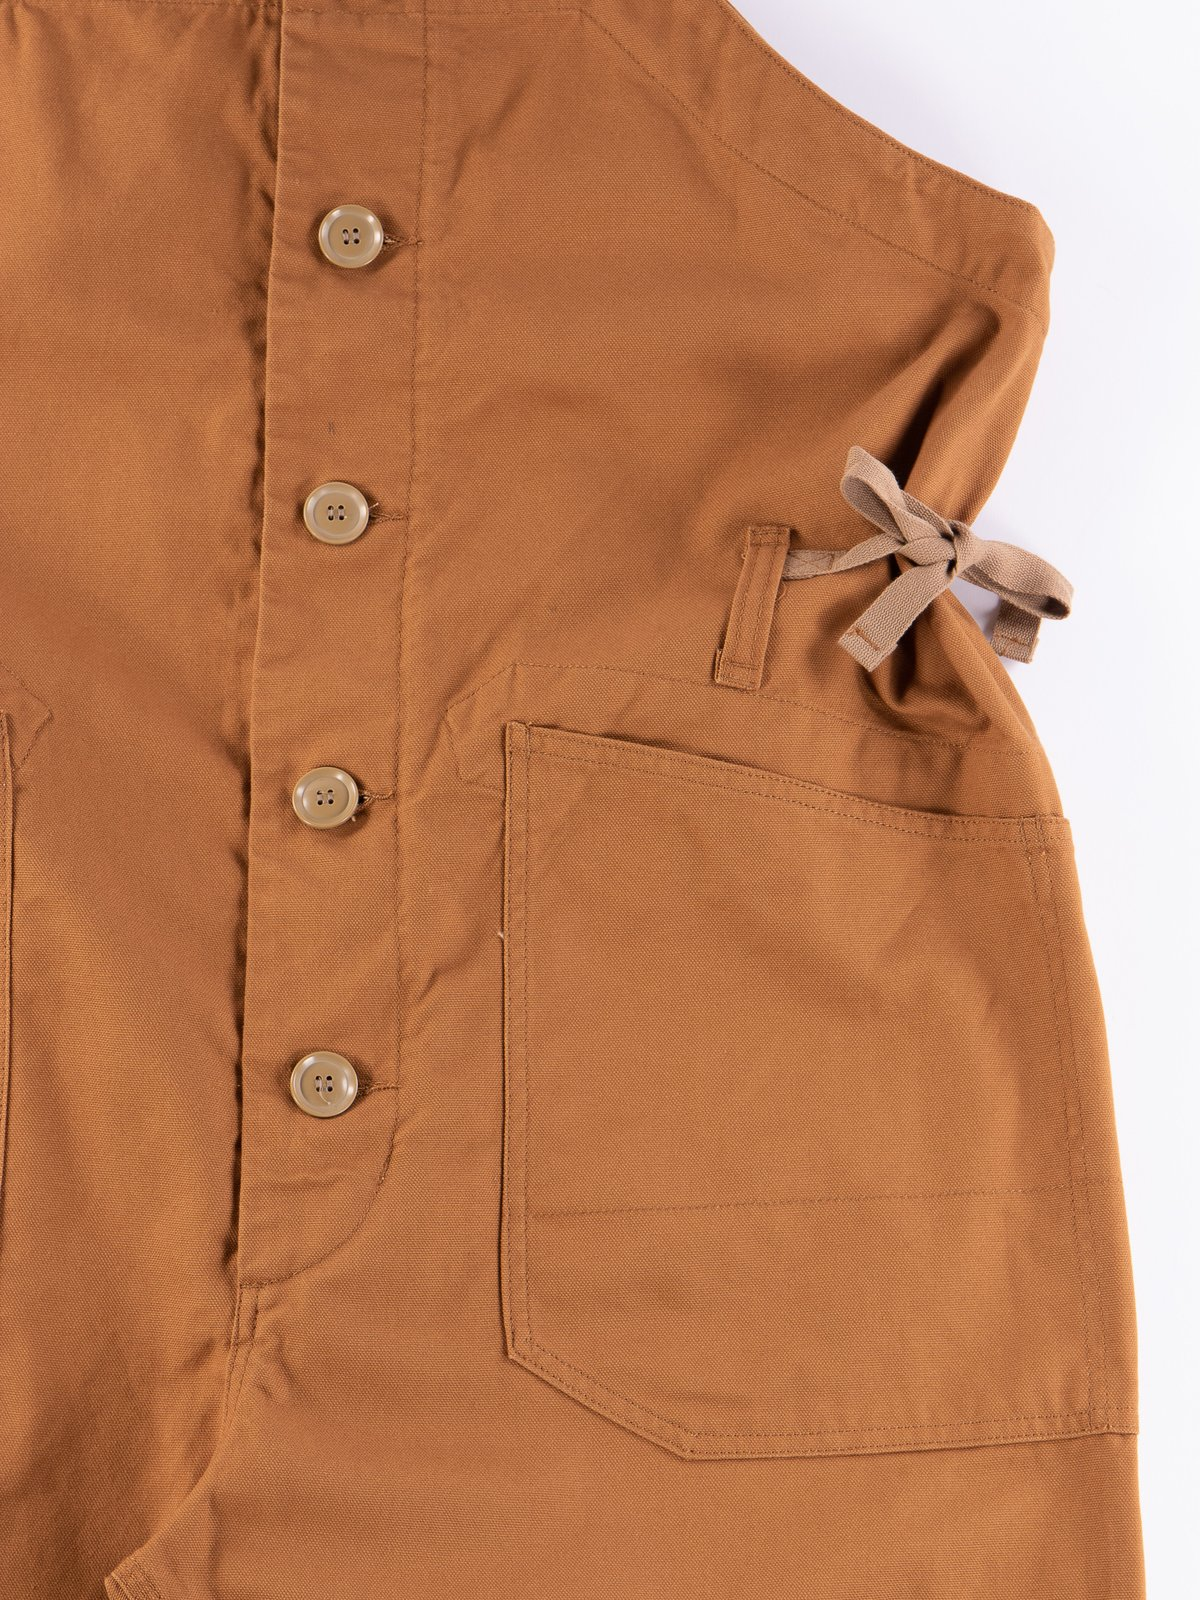 Brown 12oz Duck Canvas Waders - Image 6